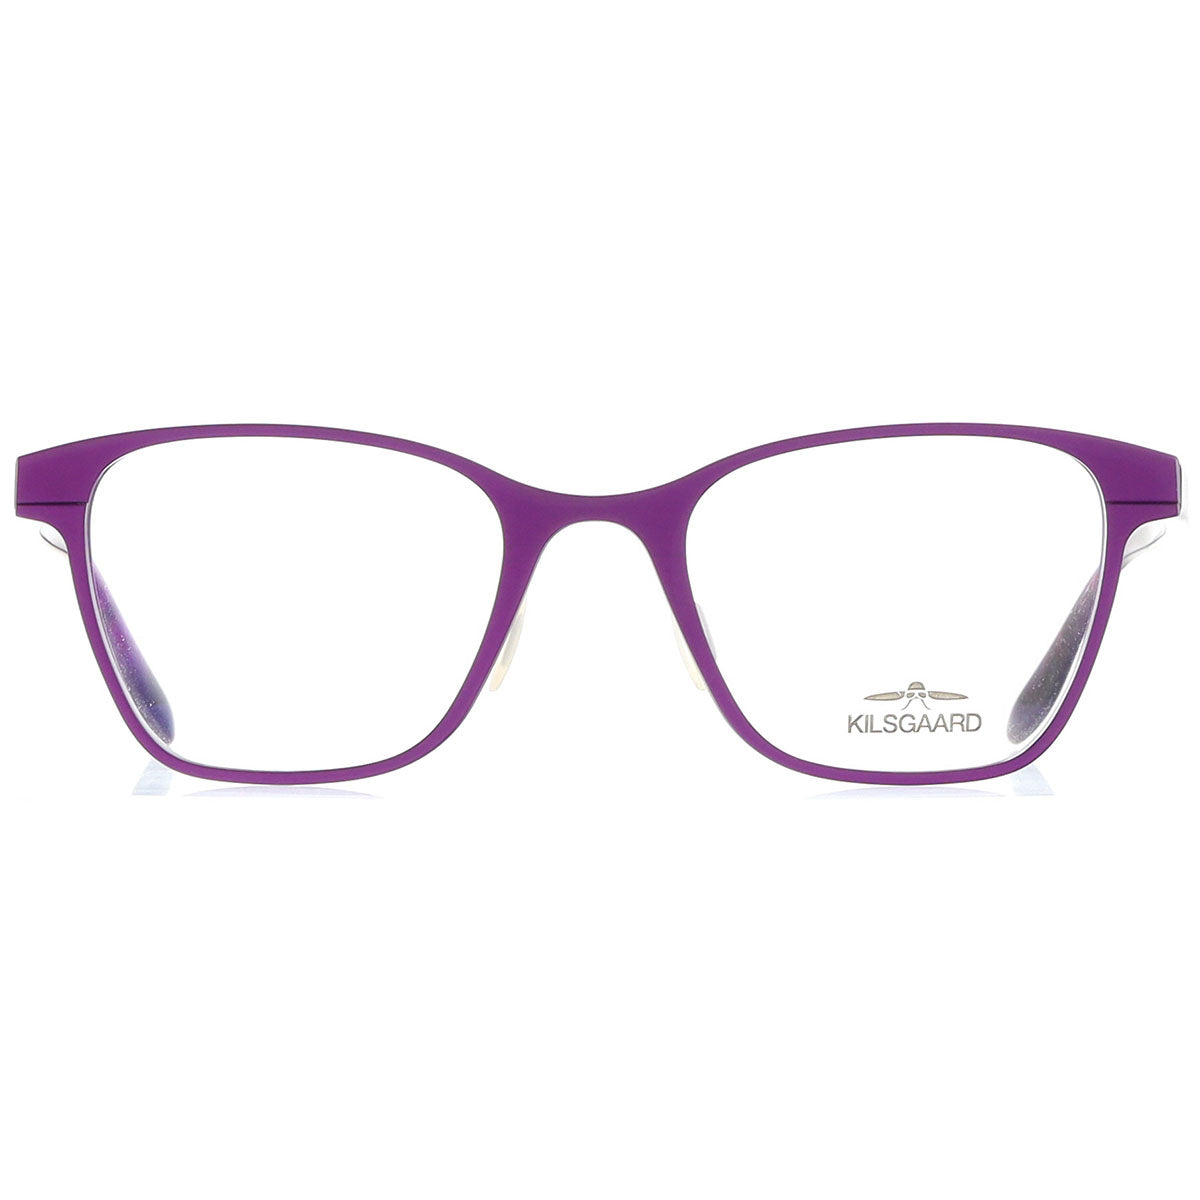 Kilsgaard Bonnelycke 69.8/18 Purple